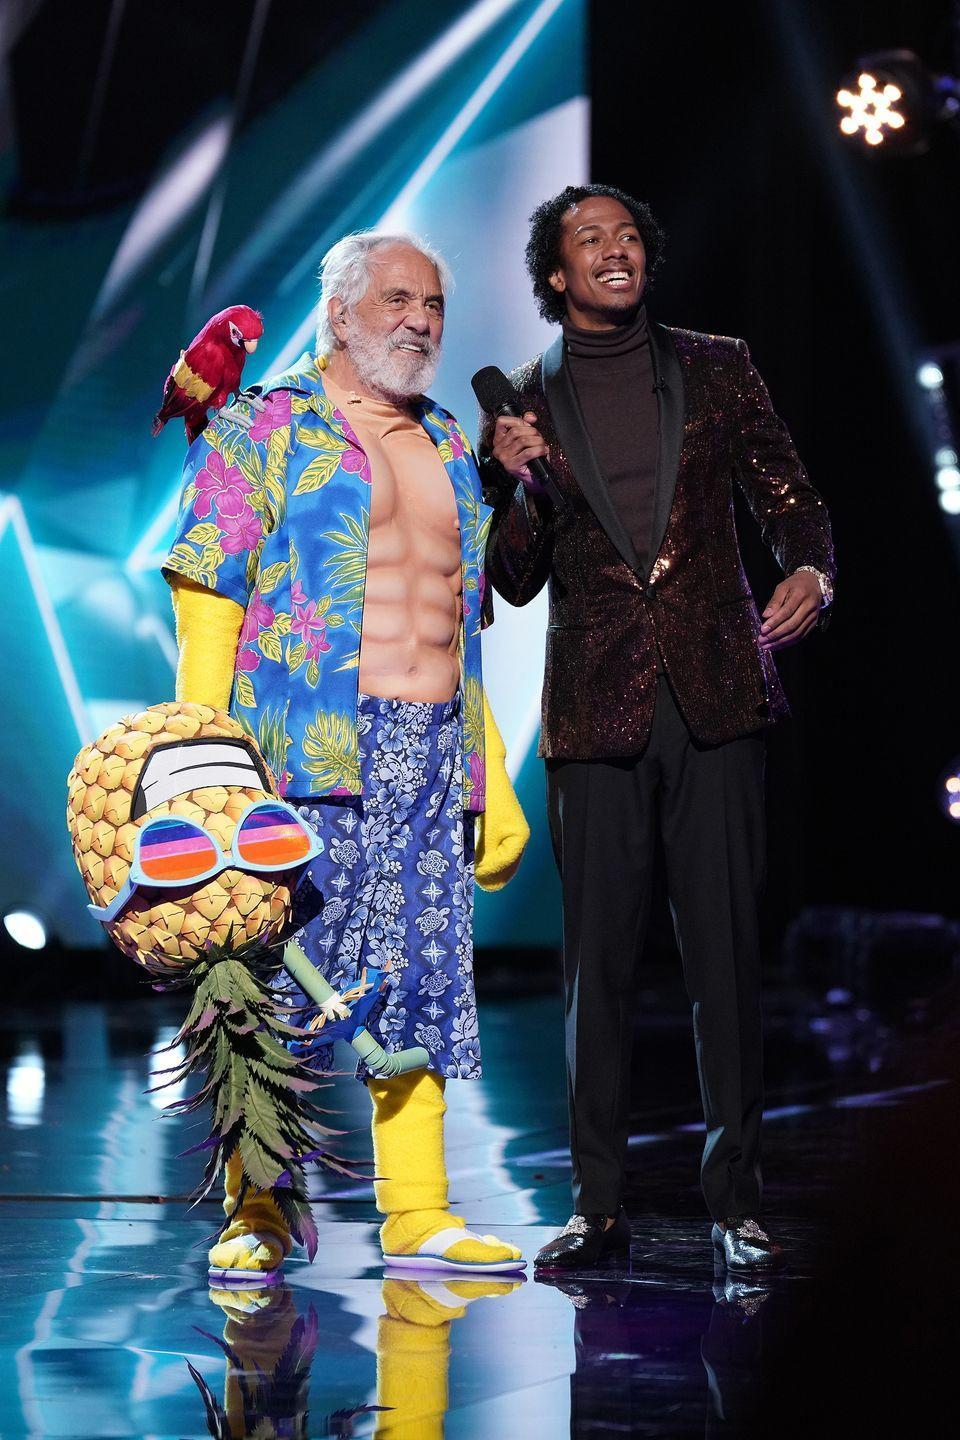 """<p>Since the show is prerecorded, the audience has to <a href=""""https://www.bustle.com/p/the-masked-singer-season-2-security-is-going-to-make-it-even-harder-to-guess-whos-behind-the-masks-15932606"""" rel=""""nofollow noopener"""" target=""""_blank"""" data-ylk=""""slk:sign a nondisclosure agreement"""" class=""""link rapid-noclick-resp"""">sign a nondisclosure agreement</a> before they attend a taping, which prevents them from spoiling the results before the episode airs.</p>"""